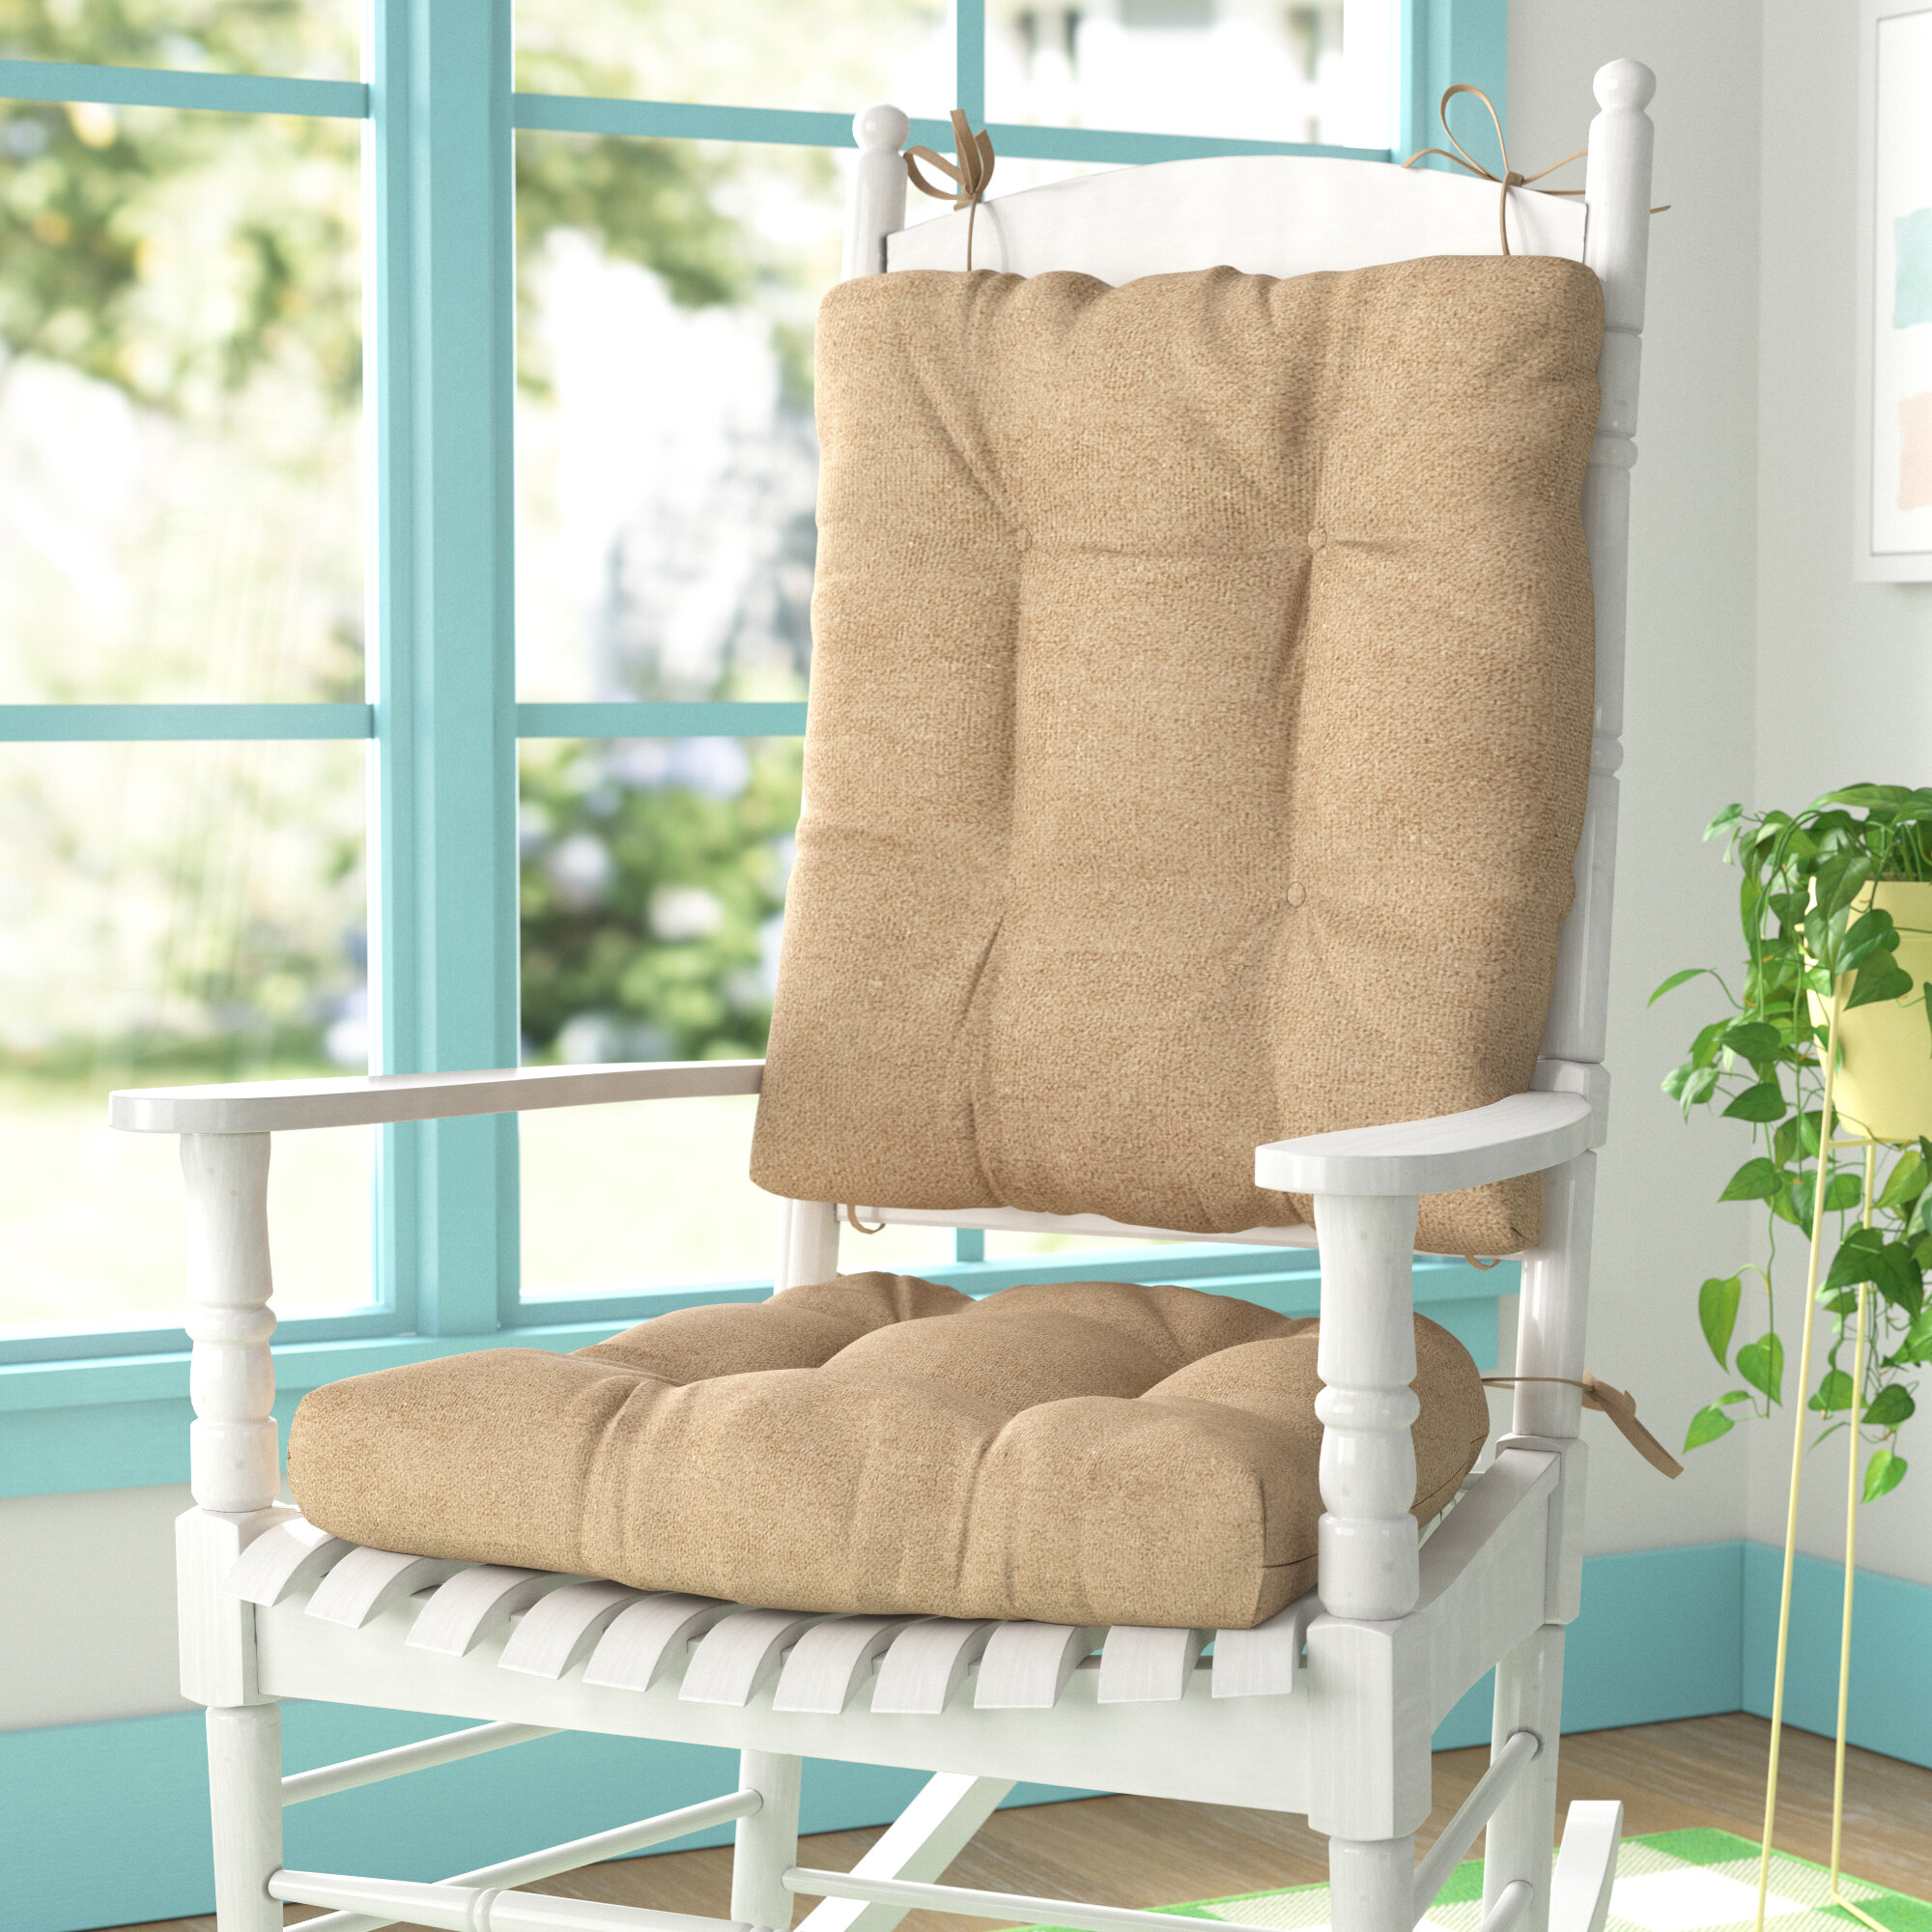 Wayfair Basics Indoor Outdoor 2 Piece Rocking Chair Cushion Set Reviews Wayfair